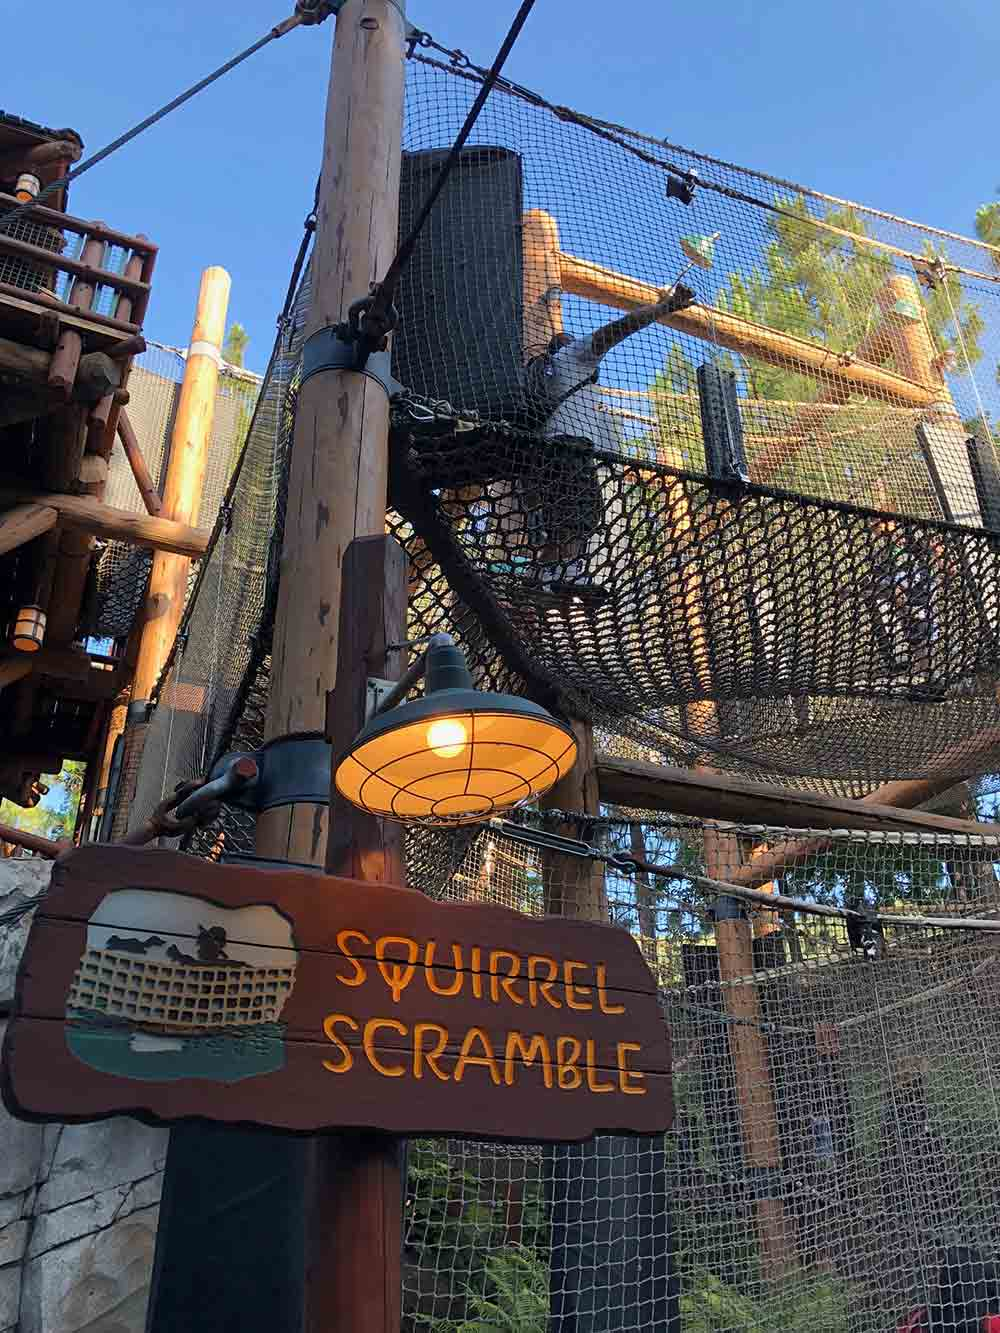 Redwood Creek Challenge Trail Squirrel Scramble